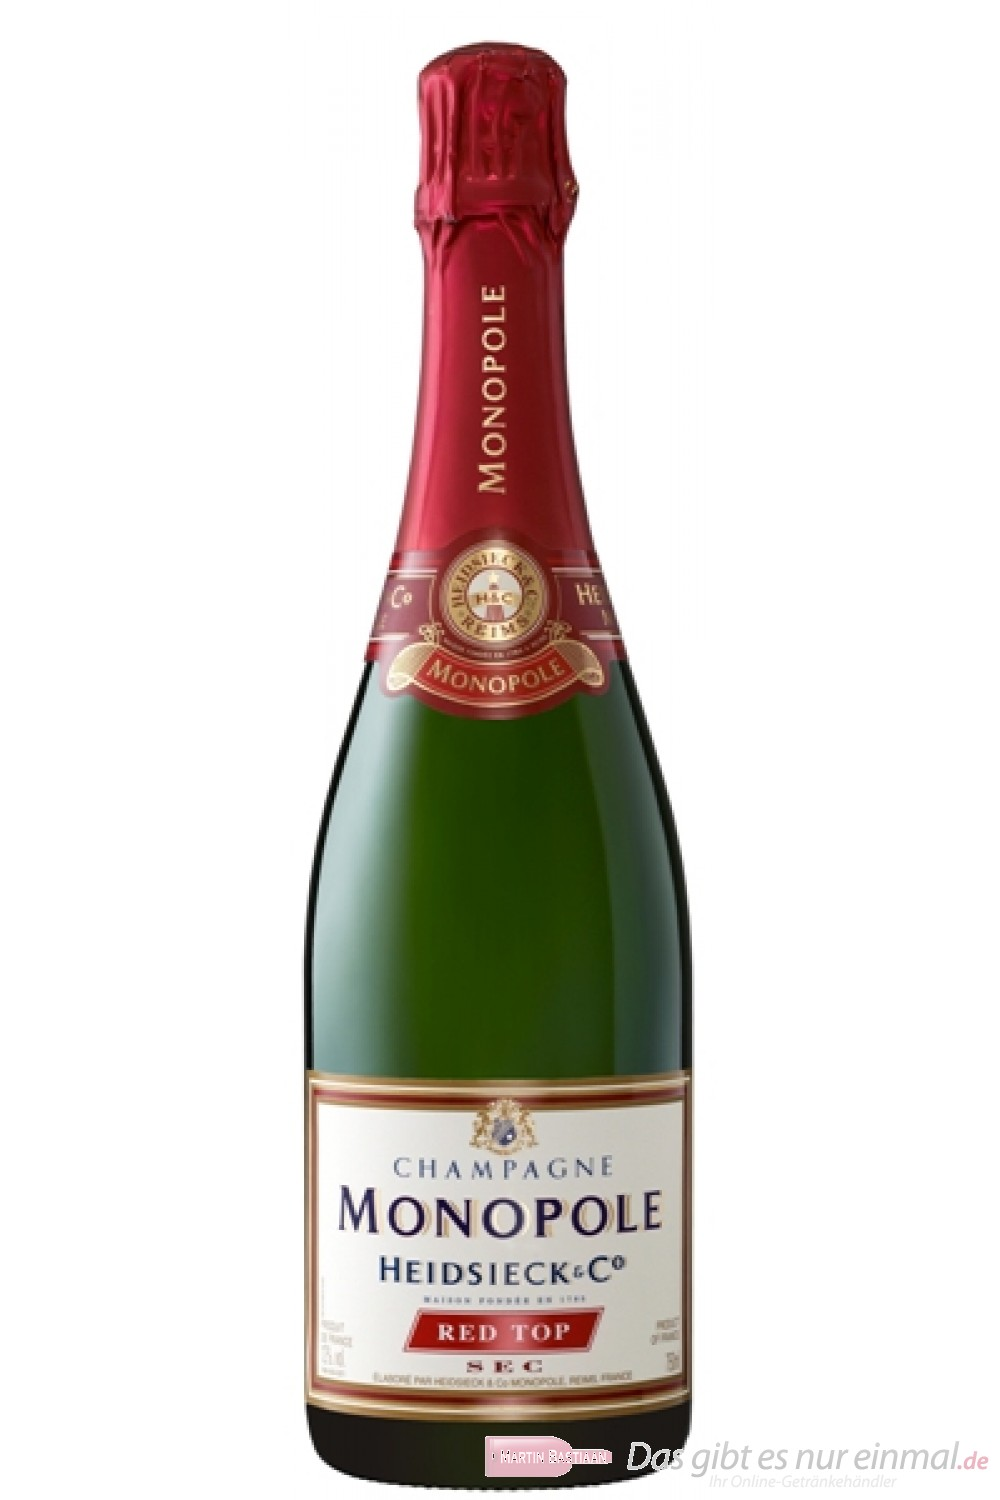 Heidsieck Monopole Red Top